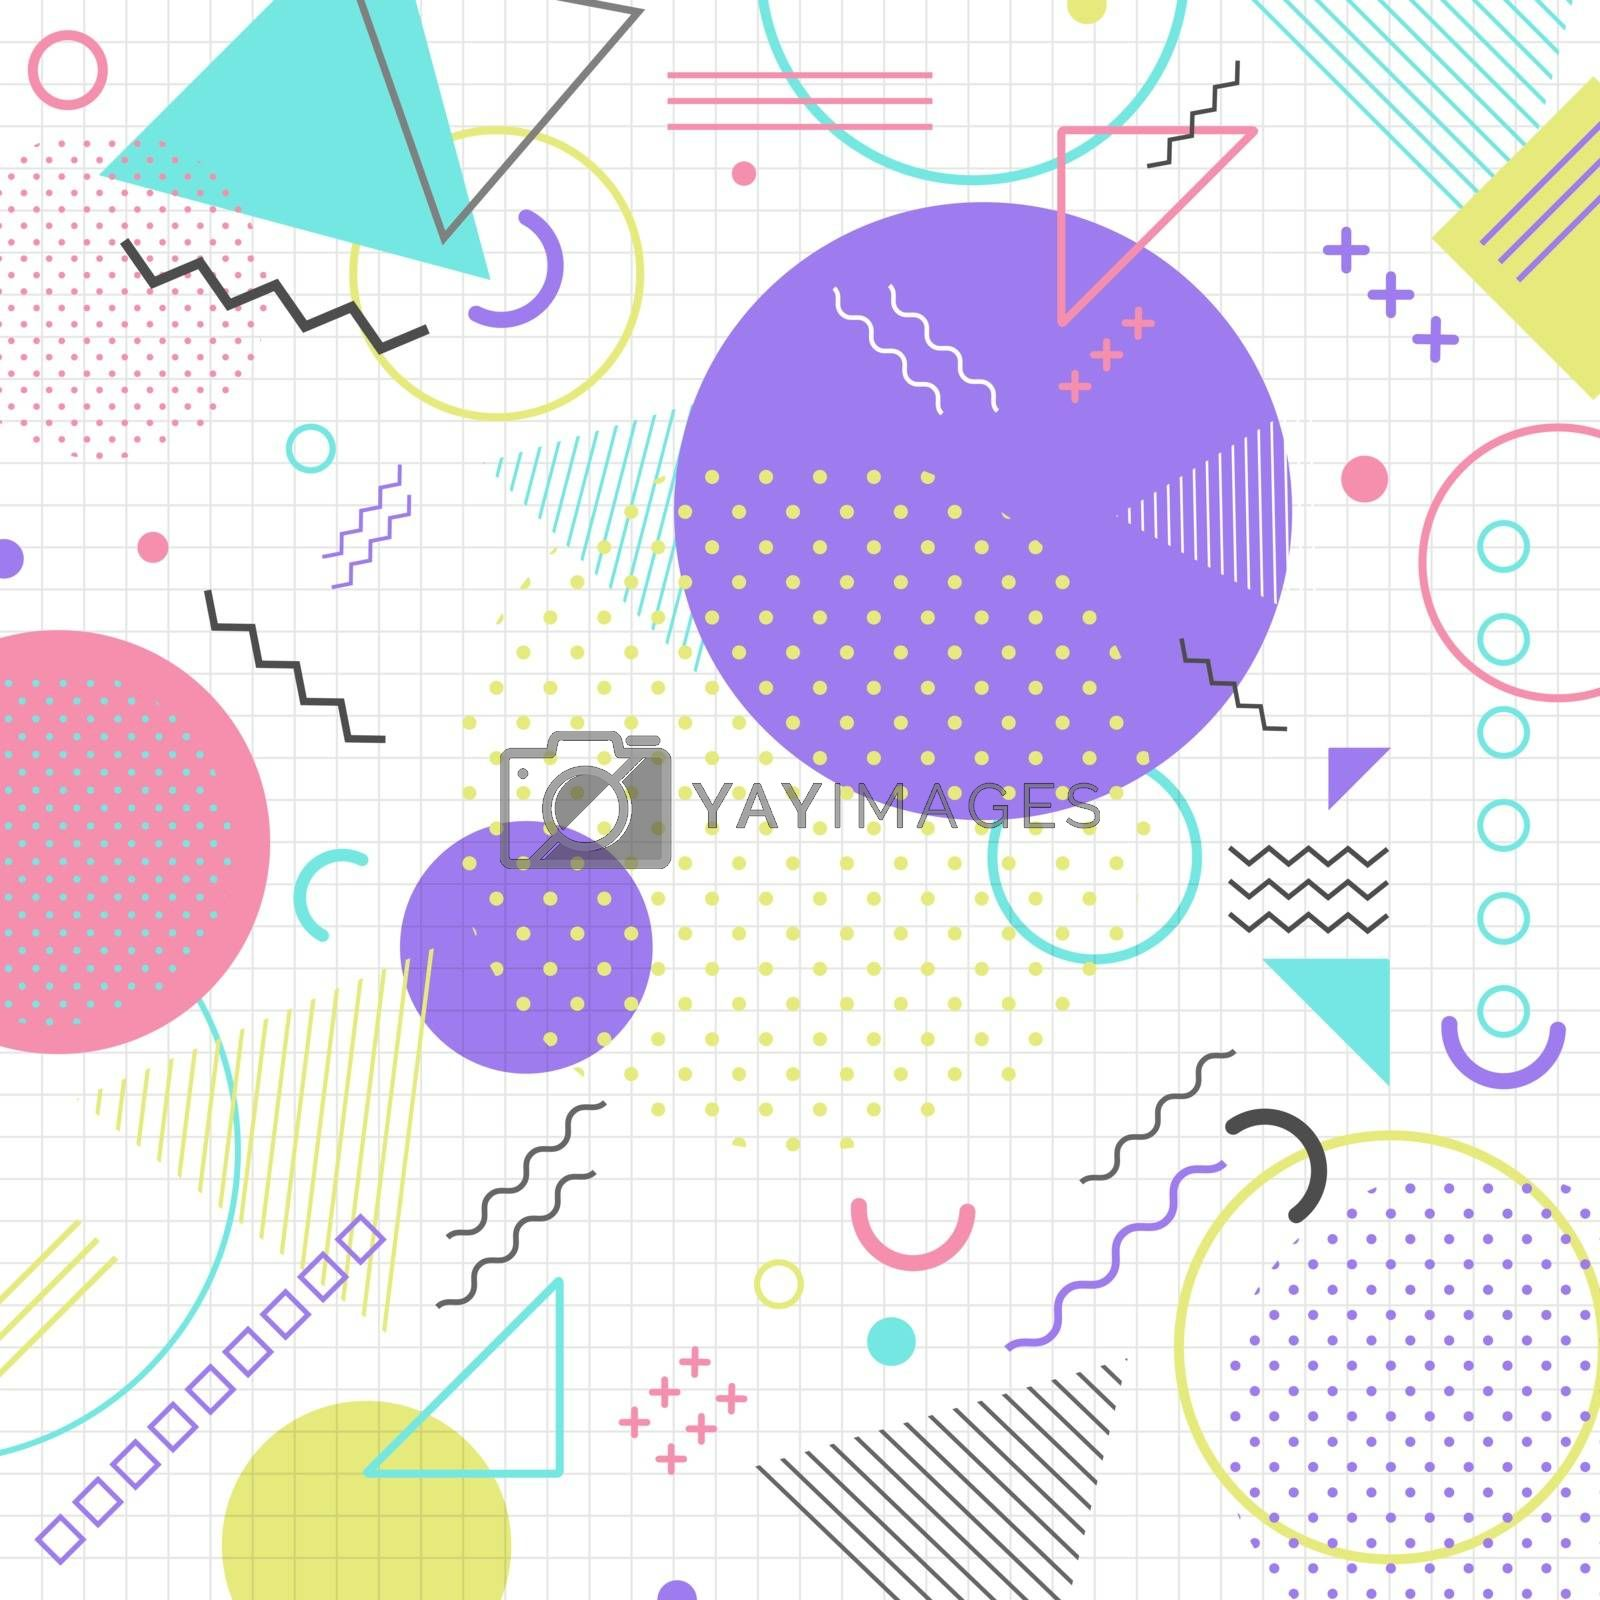 Abstract geometric shape pattern in retro 80s on grid background. Memphis style. Vector illustration